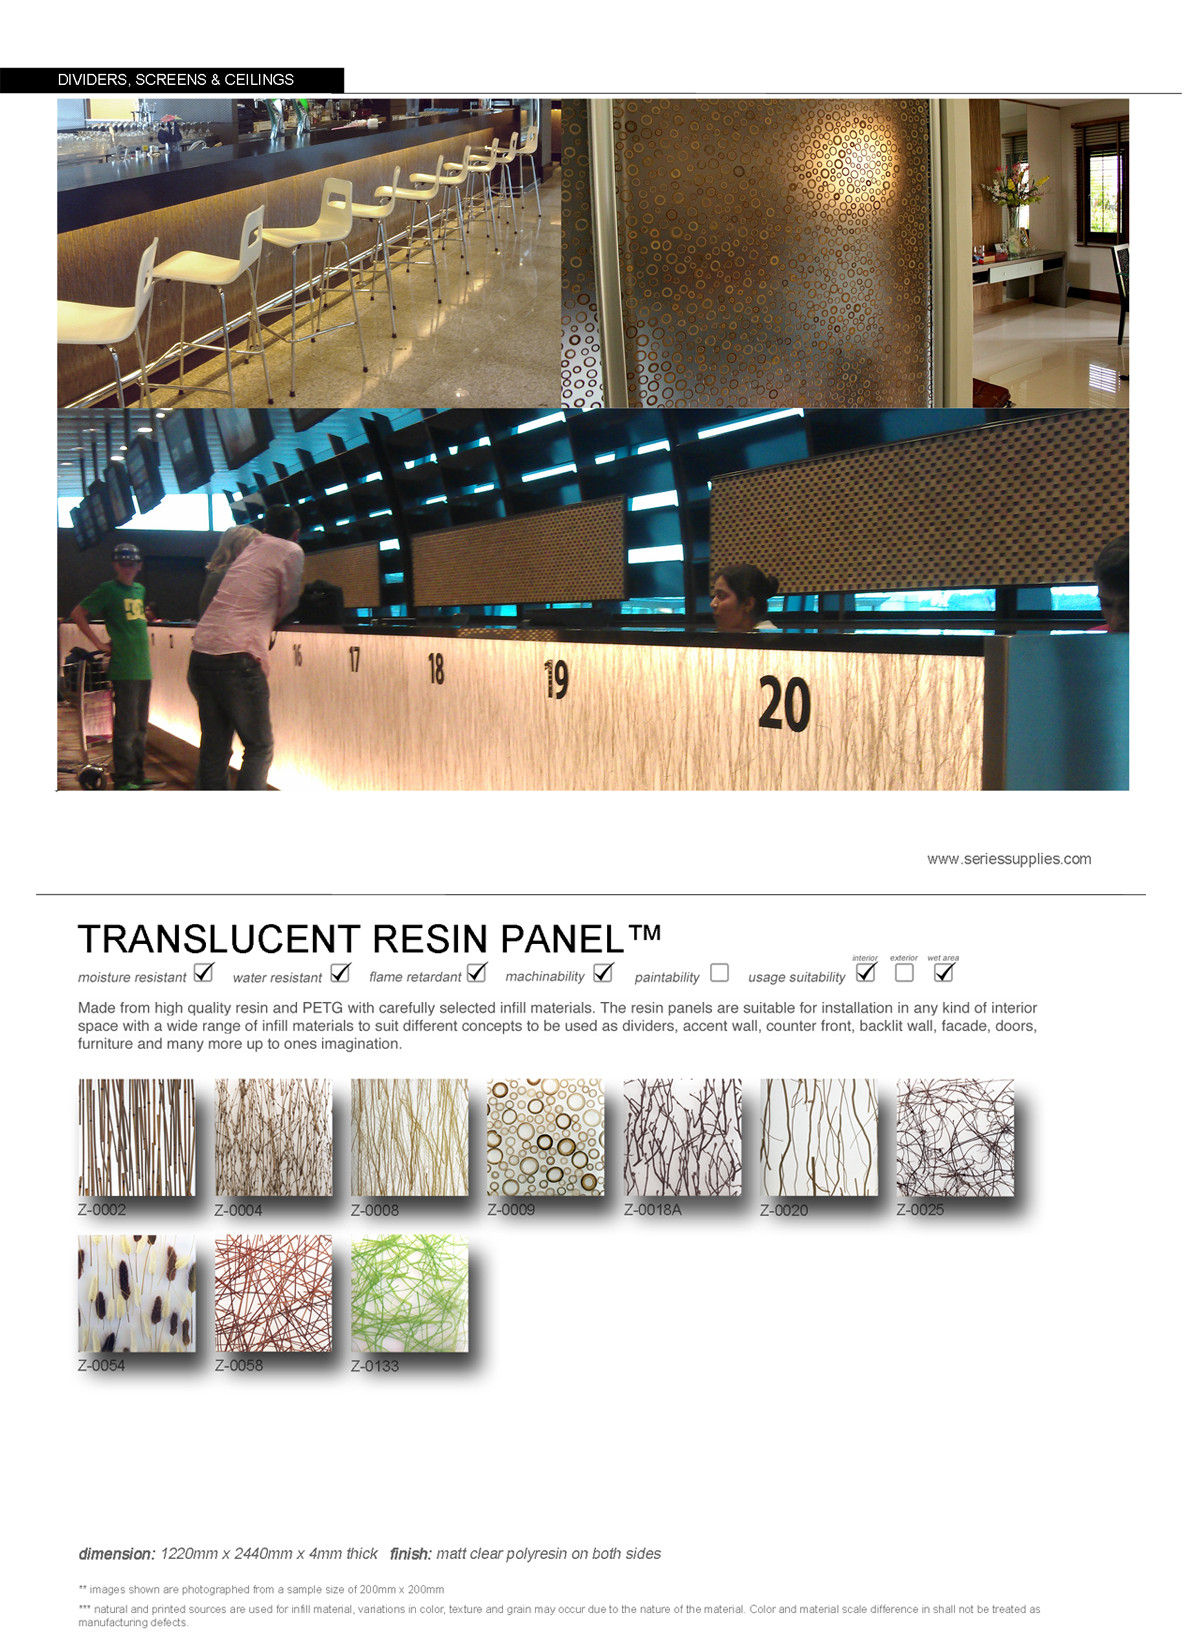 Translucent Screen Panel